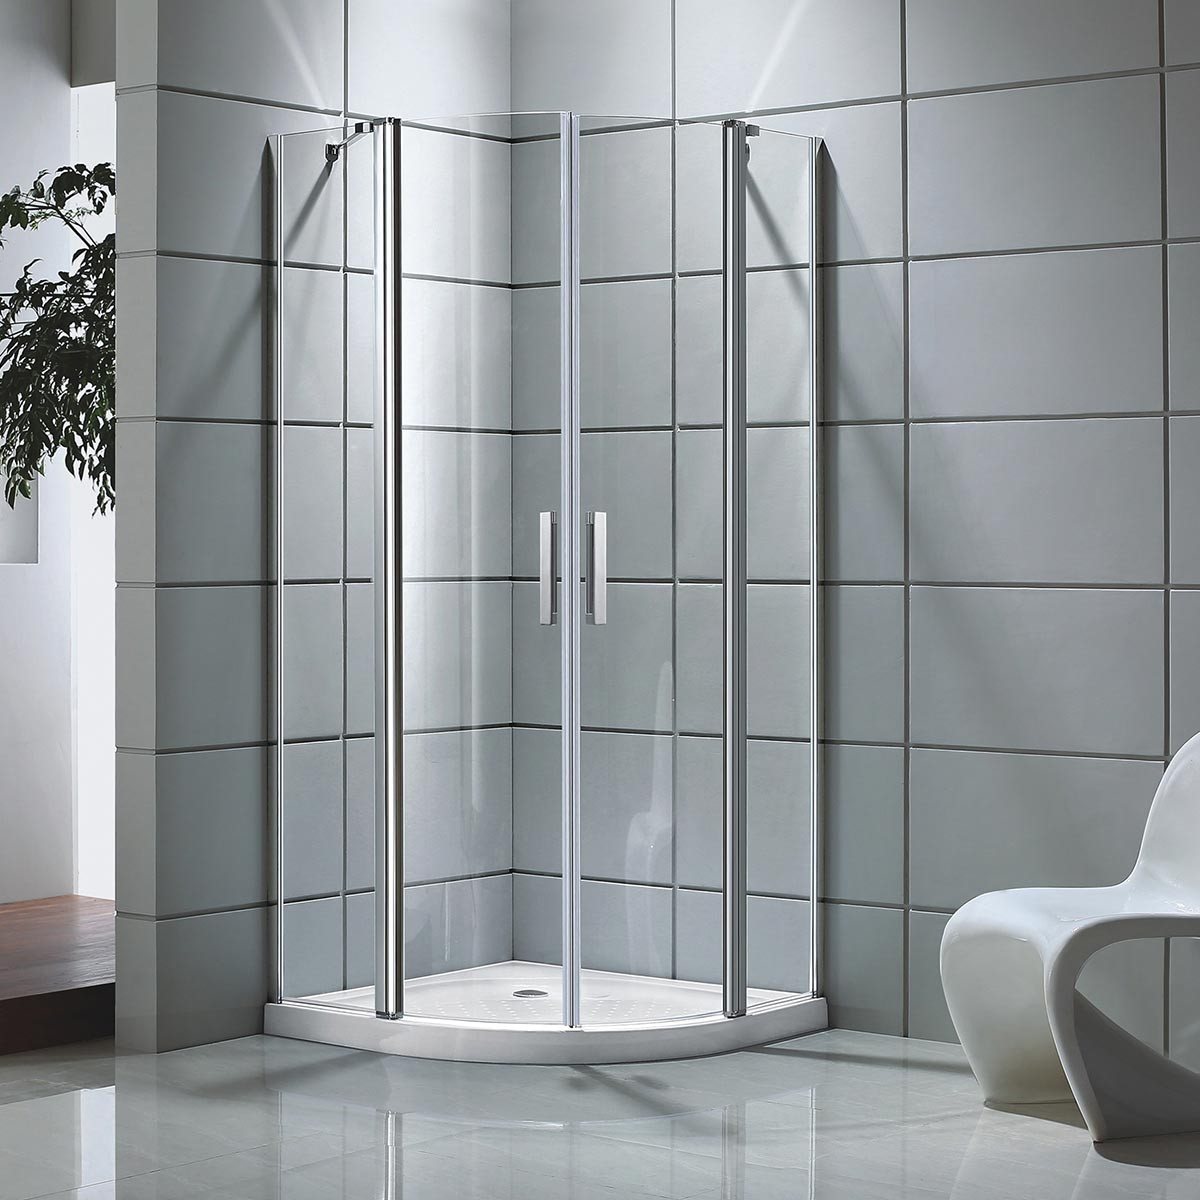 39 x 39 x 75 In. Shower Enclosure (DK-D501-100)